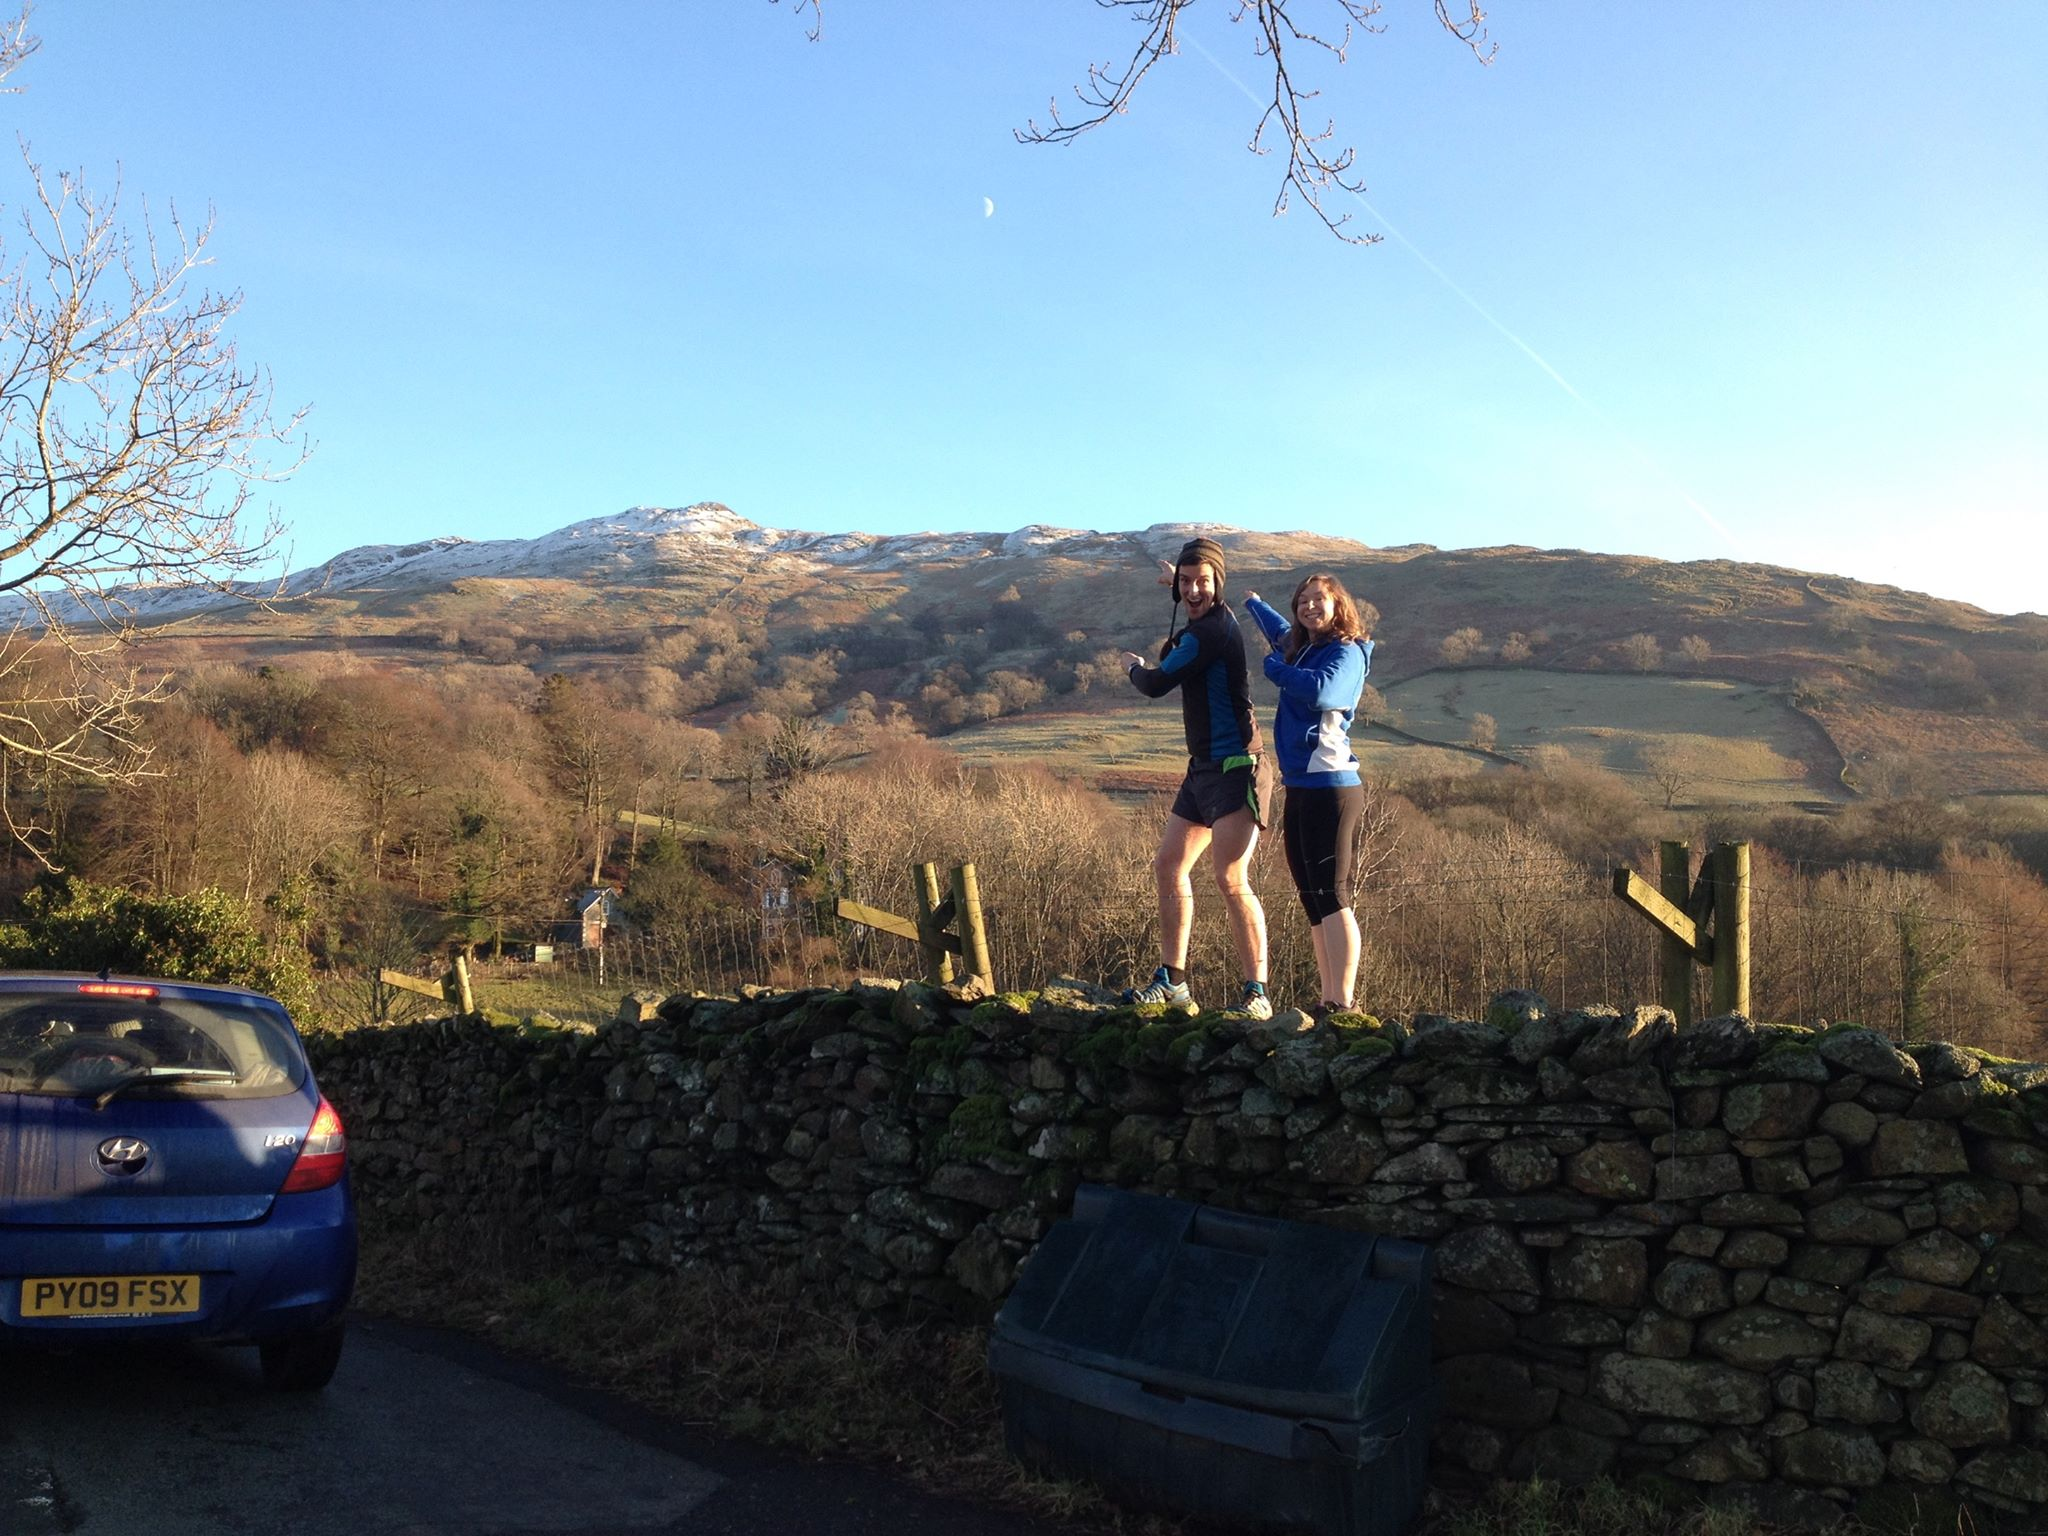 Things I know about fell running